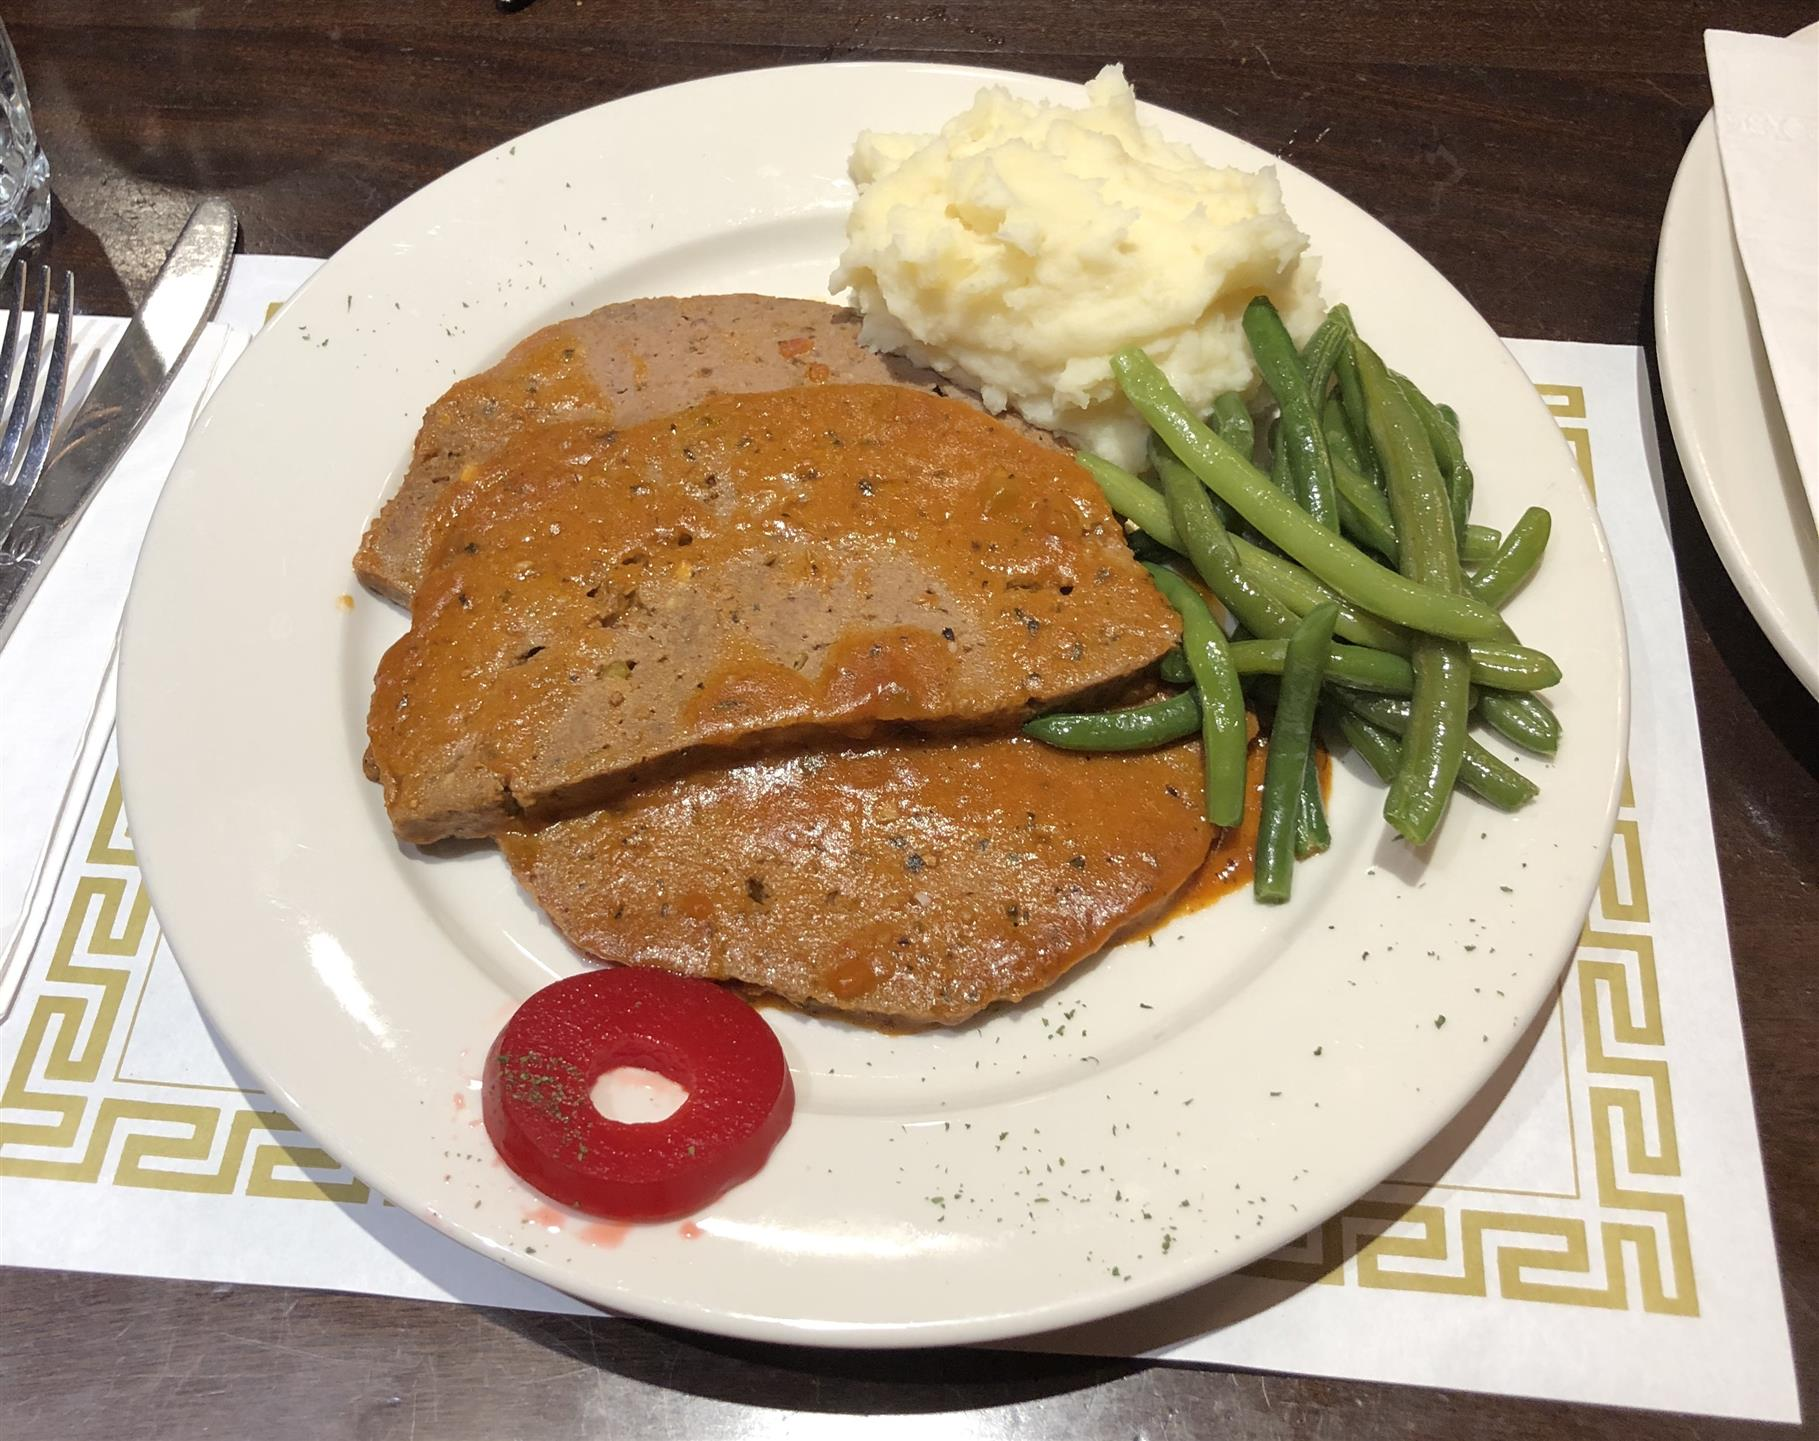 meatloaf on a plate with string beans and mashed potatoes